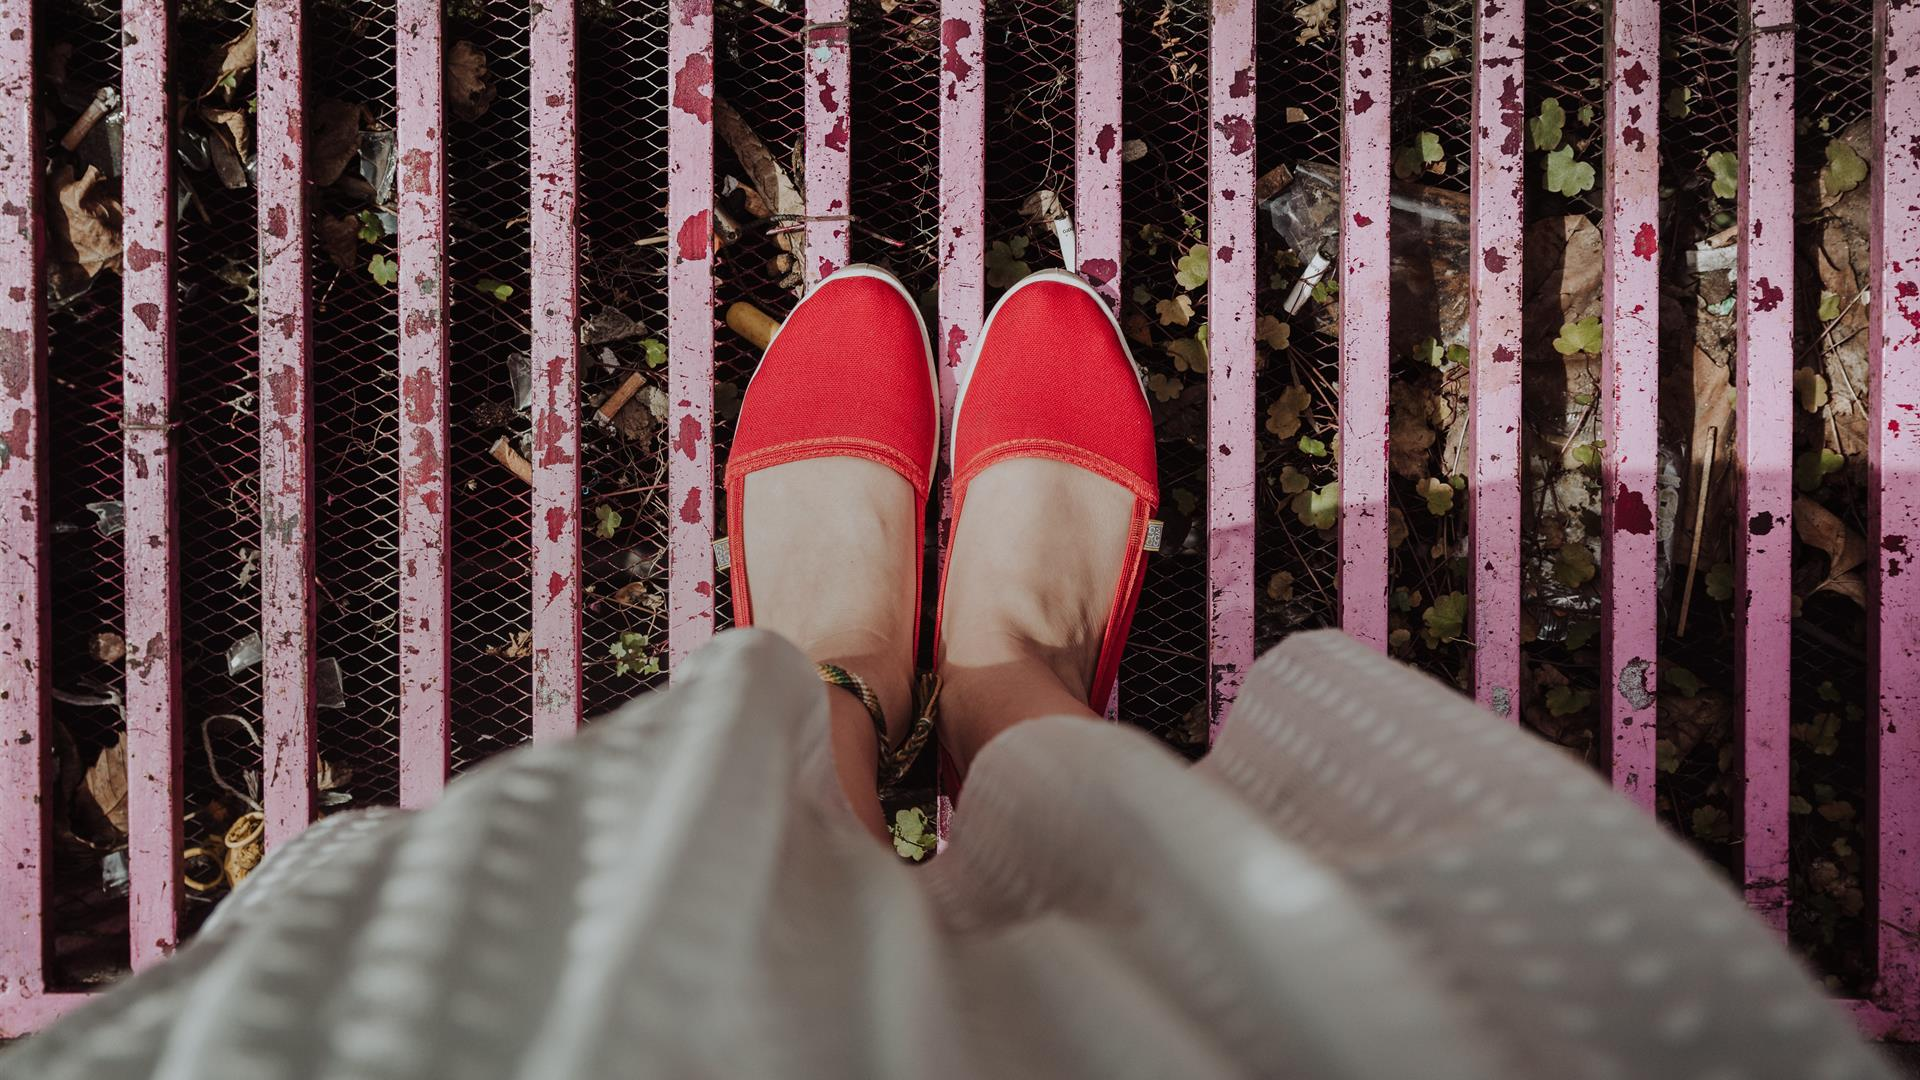 Andreea Popa Red Shoes Unsplash